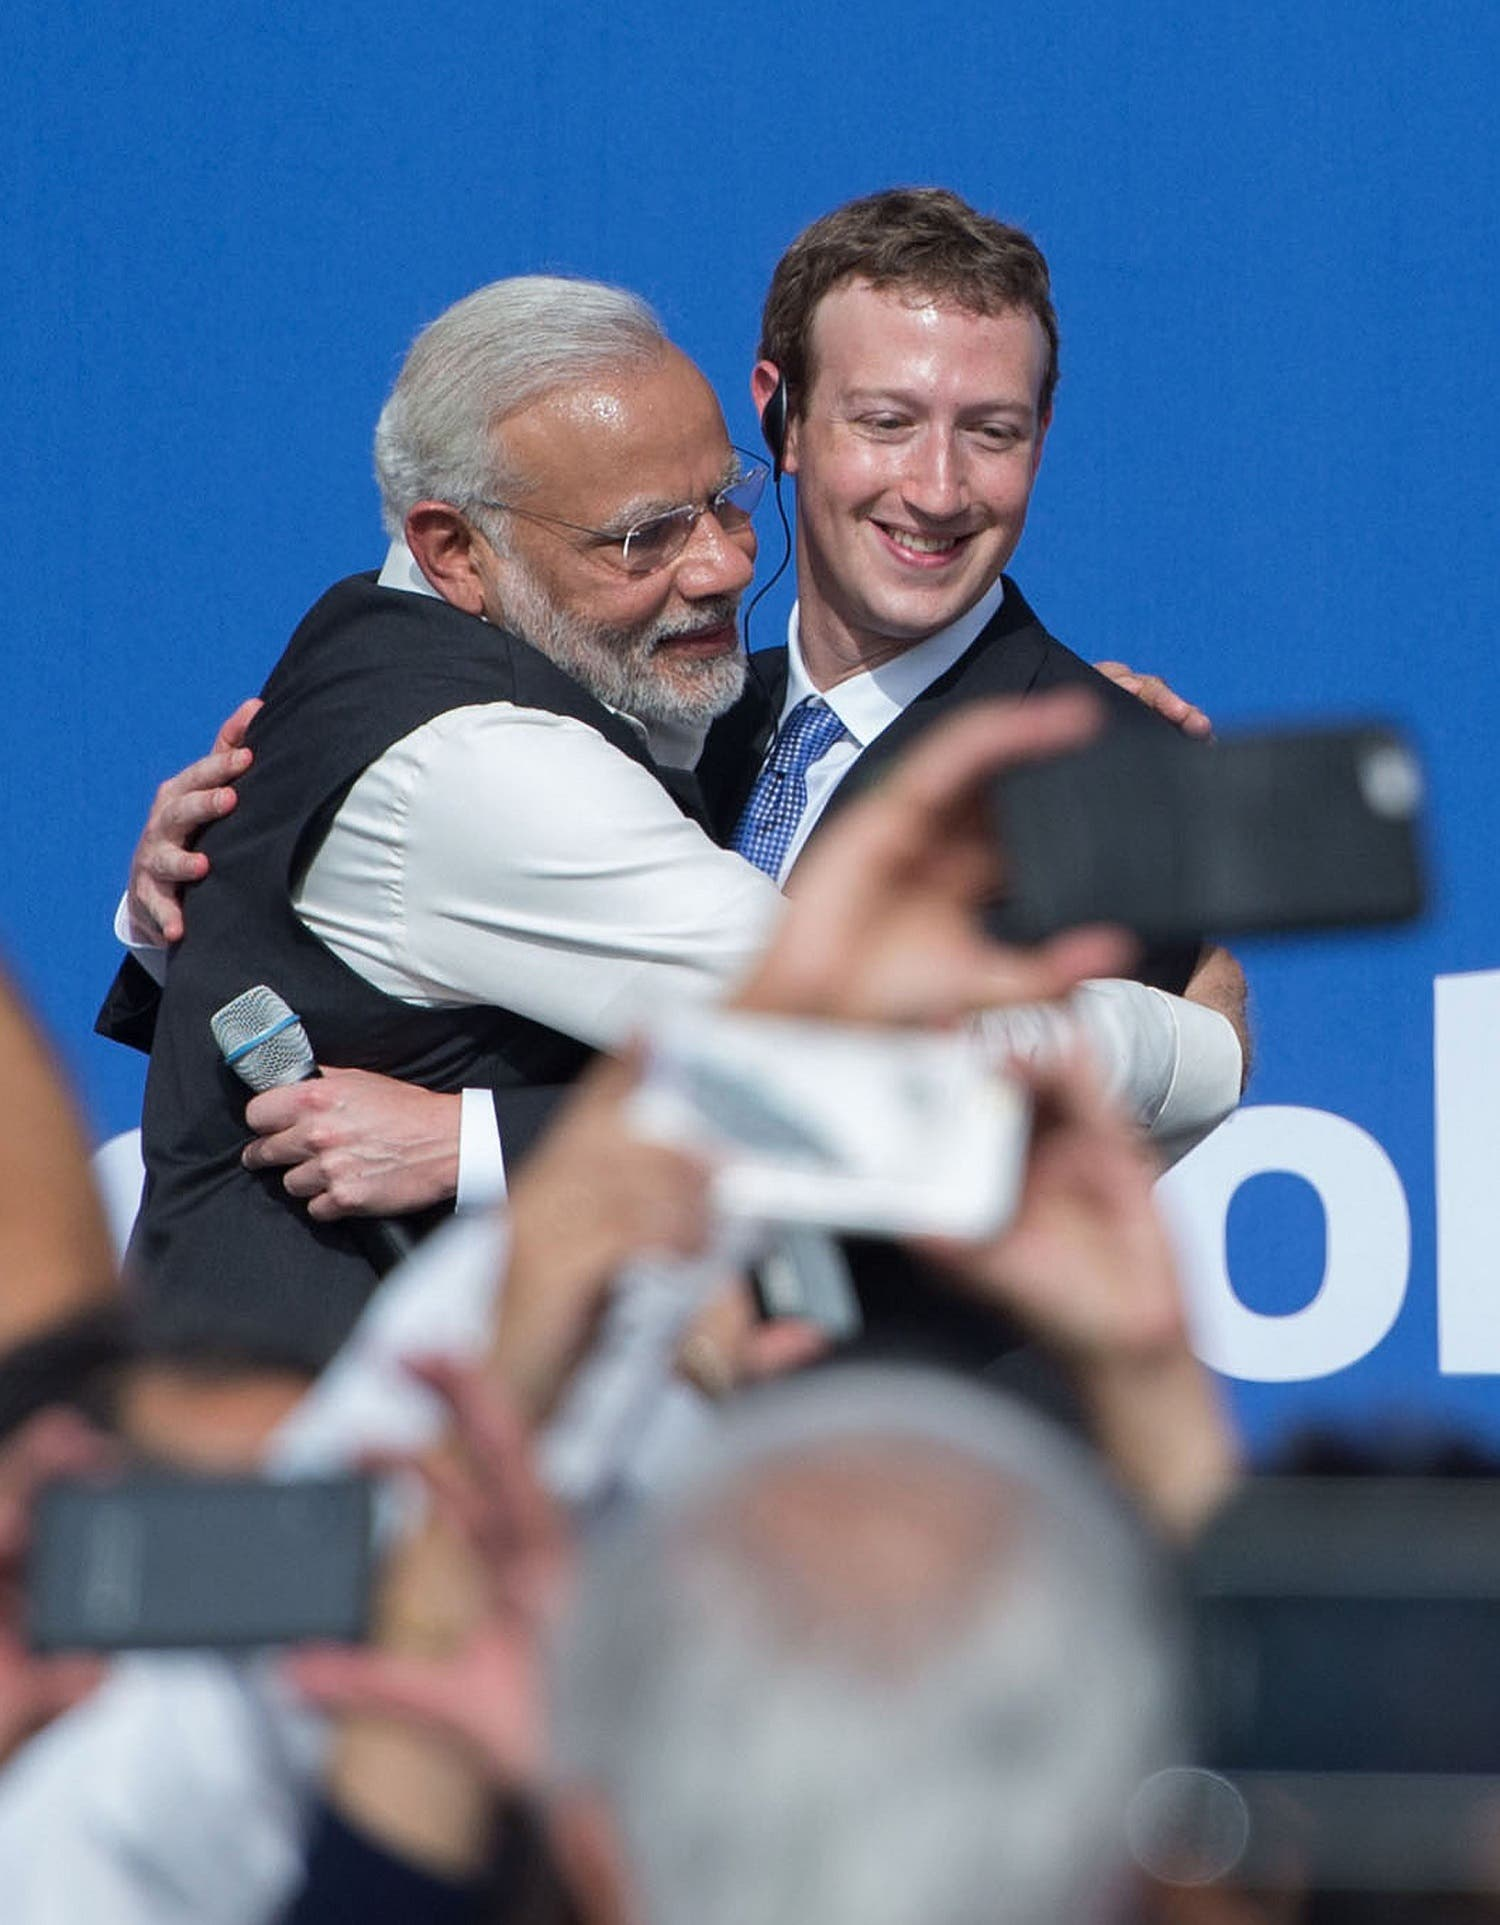 Narendra Modi and Facebook CEO Mark Zuckerberg hug after a Townhall meeting, at Facebook headquarters in Menlo Park, California, on September 27, 2015. (AFP)